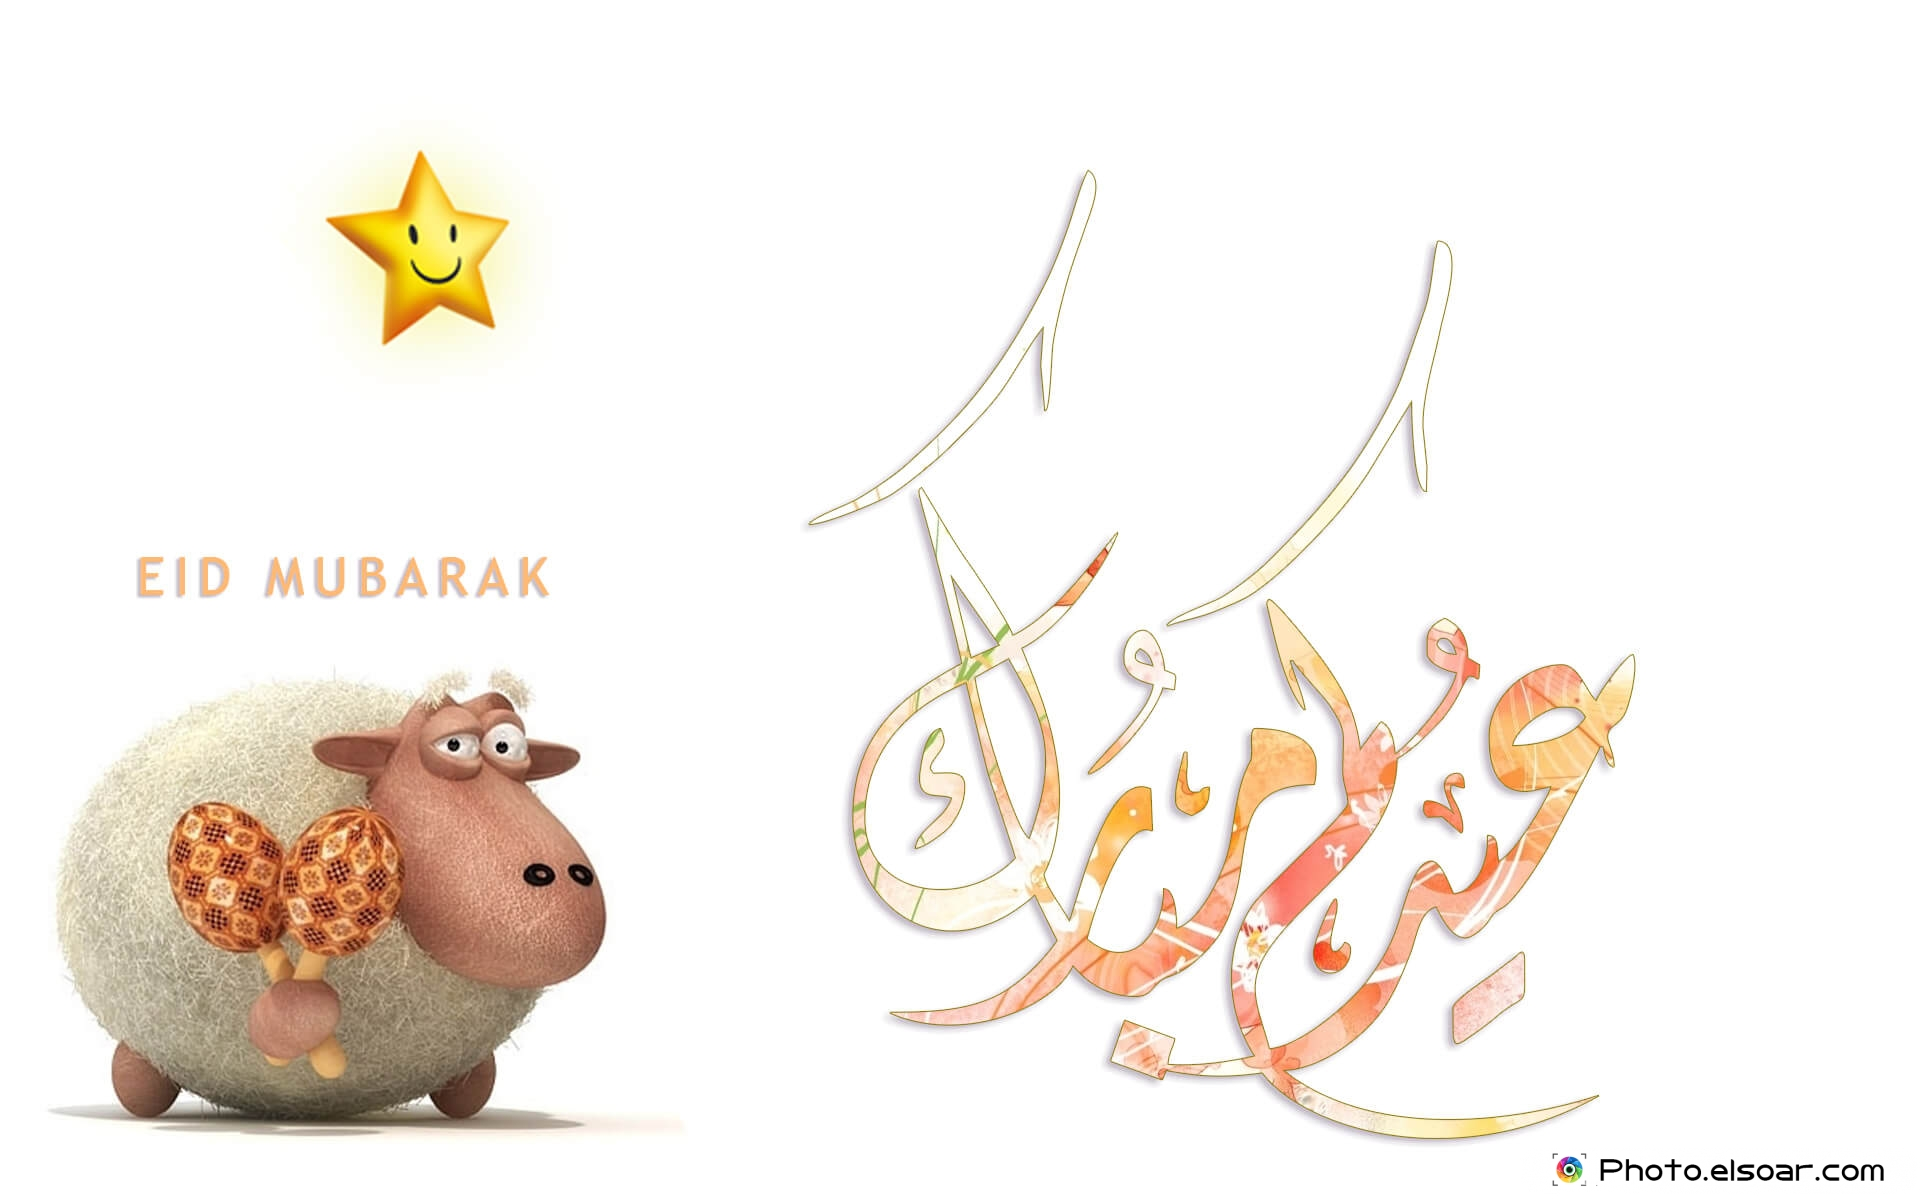 Eid Mubarak Pictures Download,Eid Mubarak Wishes,Eid Mubarak Cards,Eid Mubarak Greetings,Eid Mubarak Messages,Eid Mubarak Wallpaper